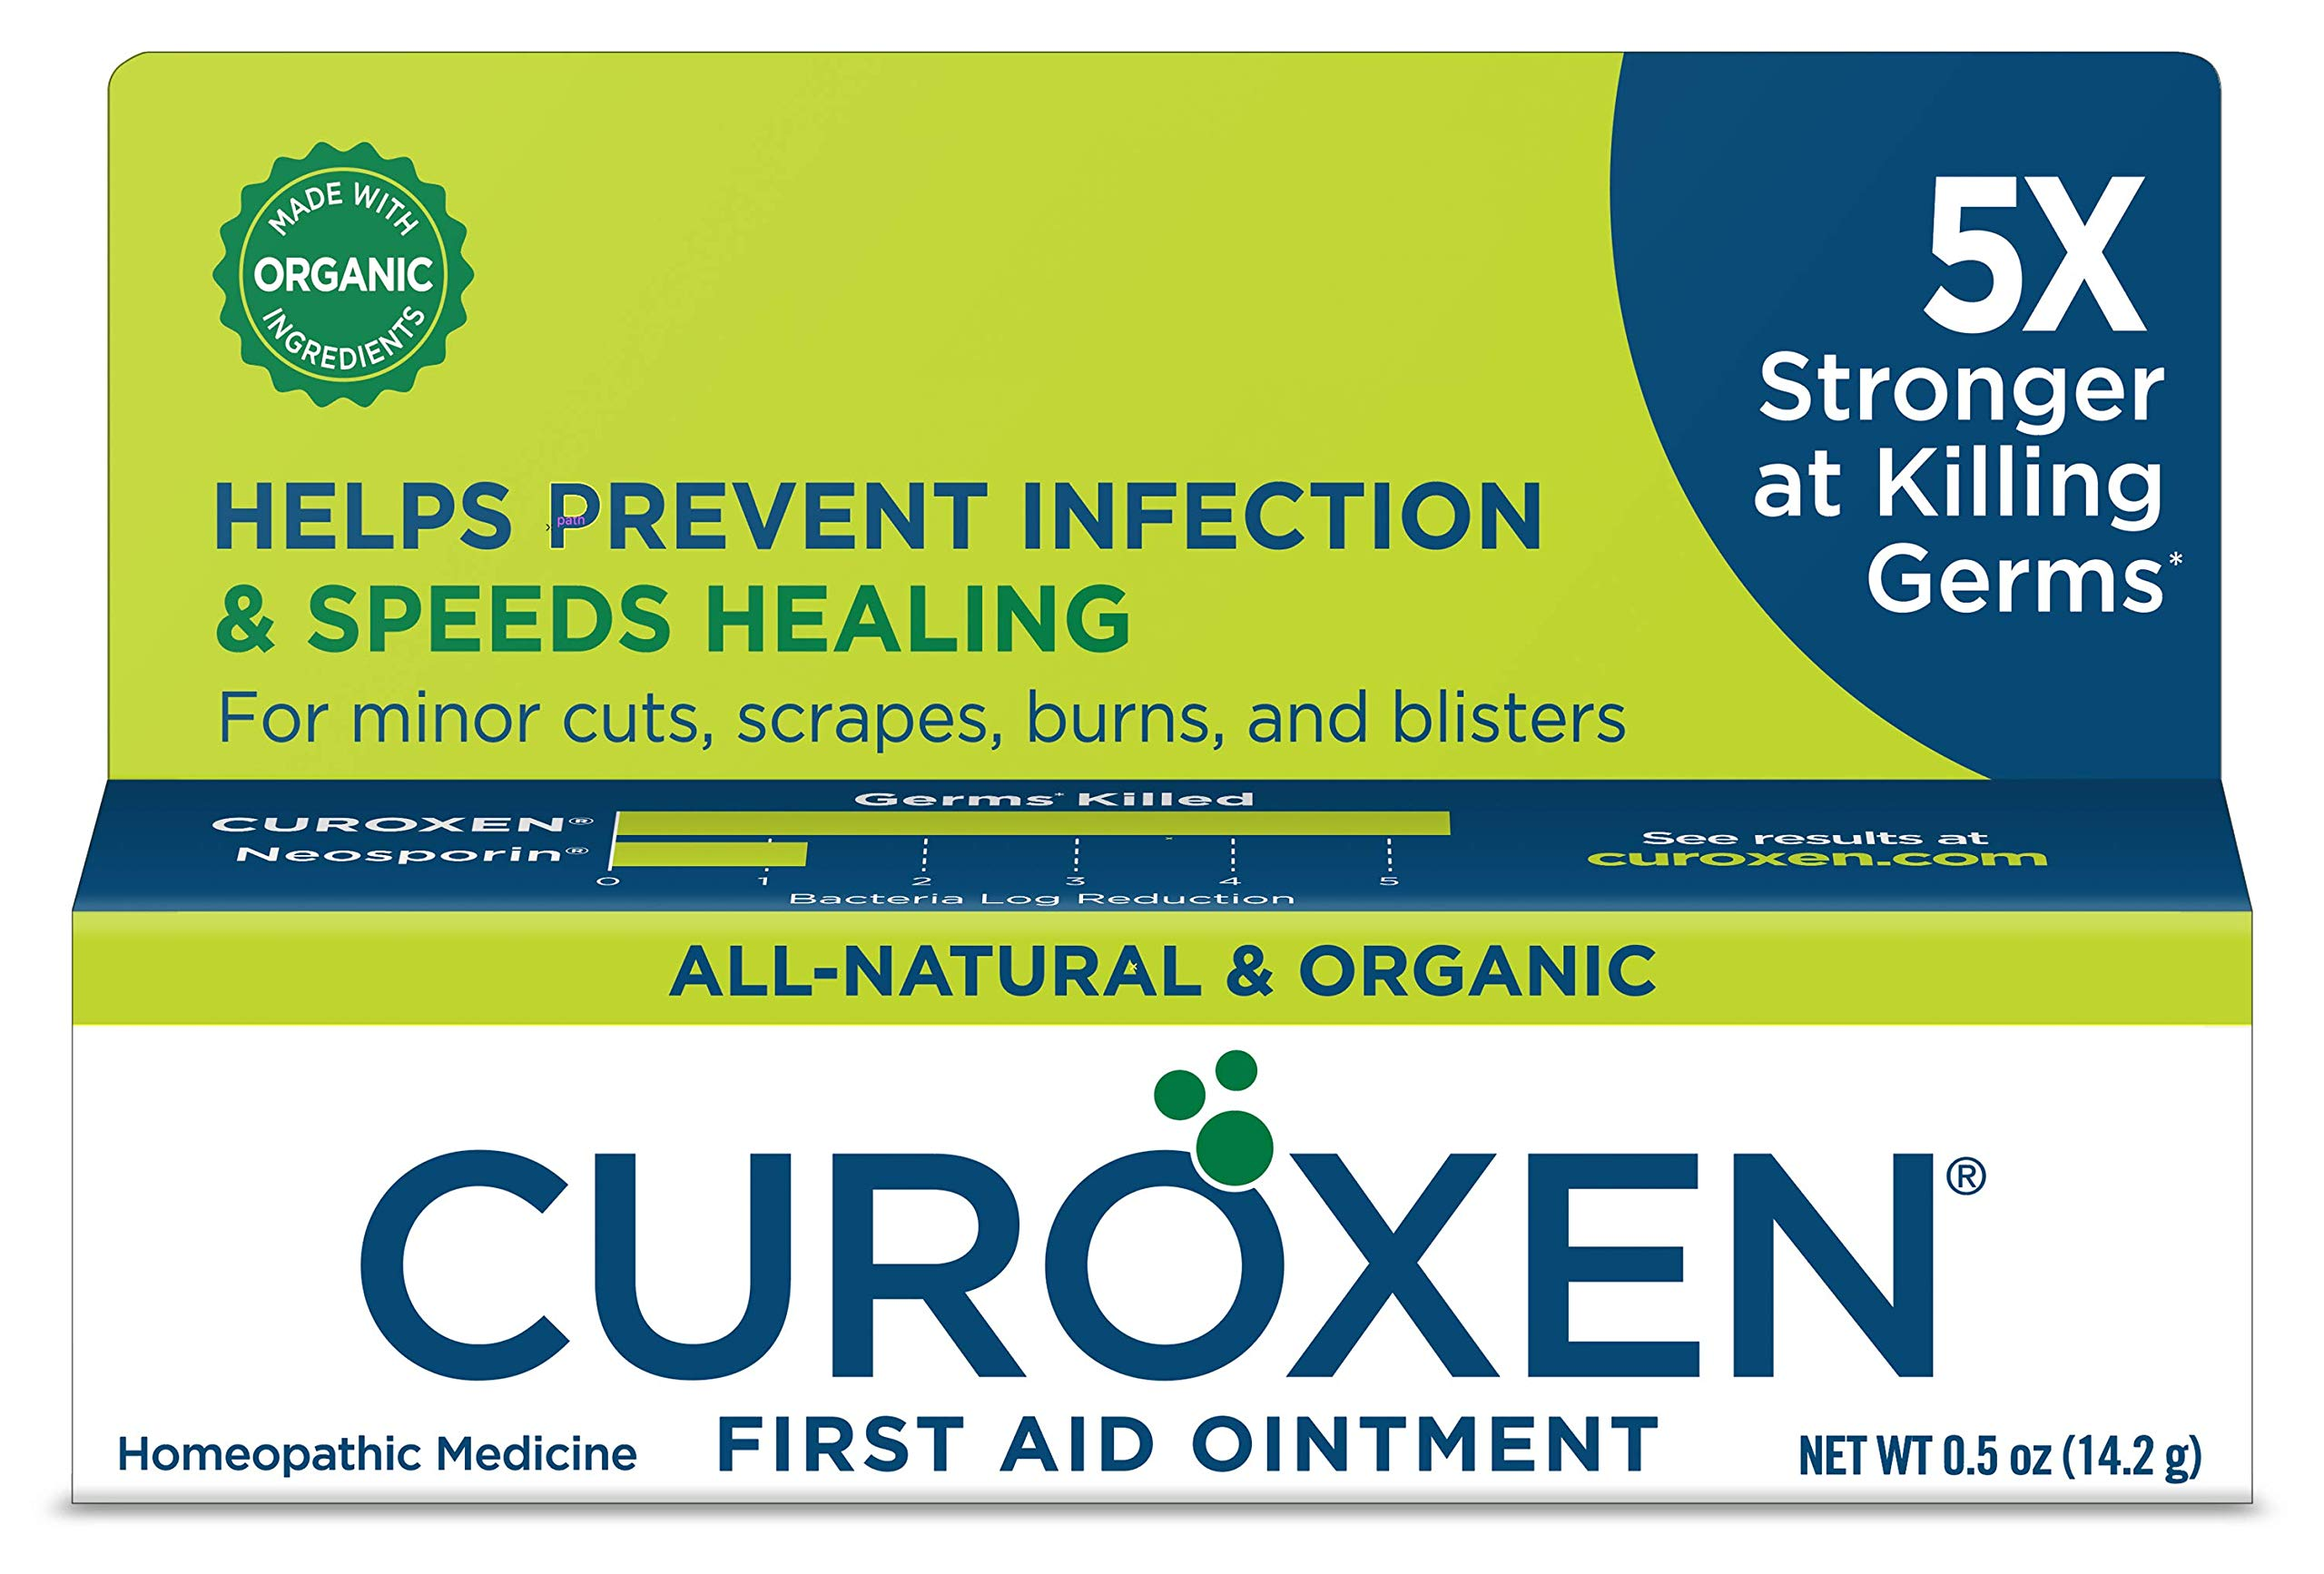 CUROXEN First Aid Antibiotic Ointment, 0.5oz | All-Natural & Organic Ingredients| First Aid Refill